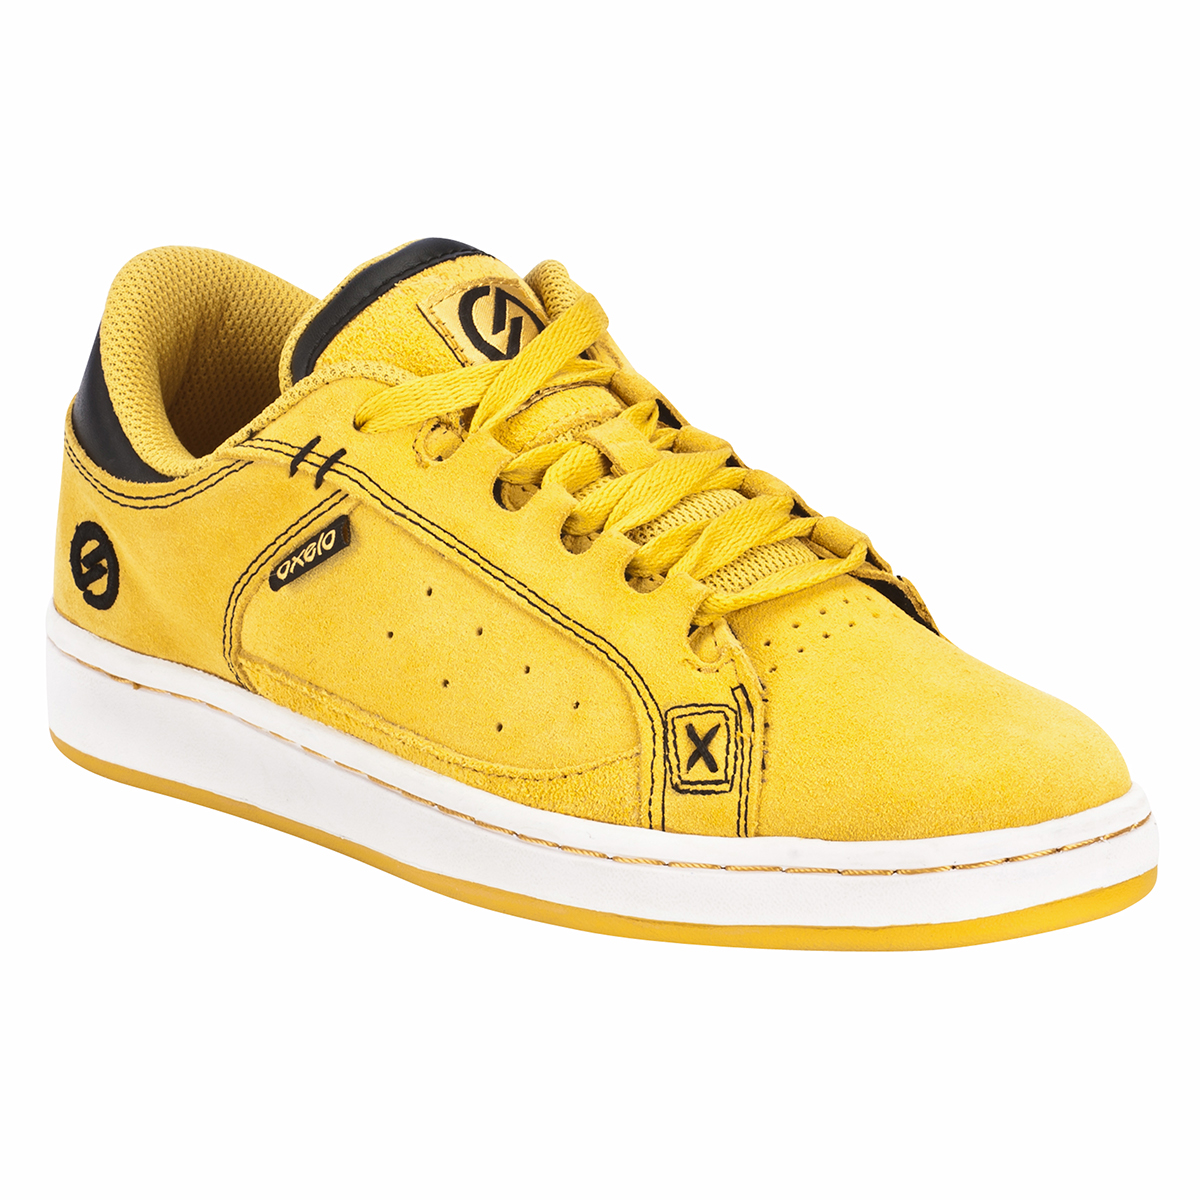 DESIGN SKATE SHOE CRUSH LOW OXELO BY FENIKS